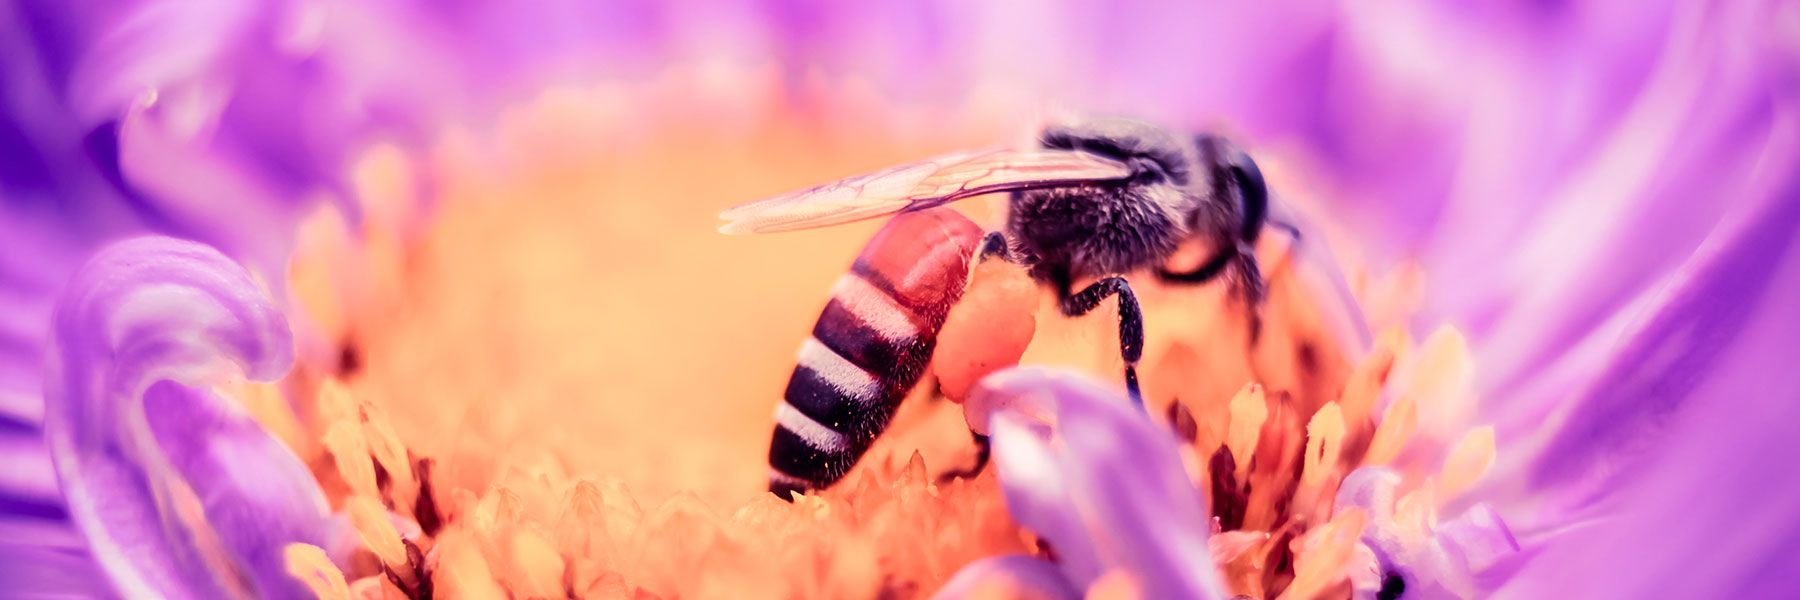 Pest control and prevention of wasps